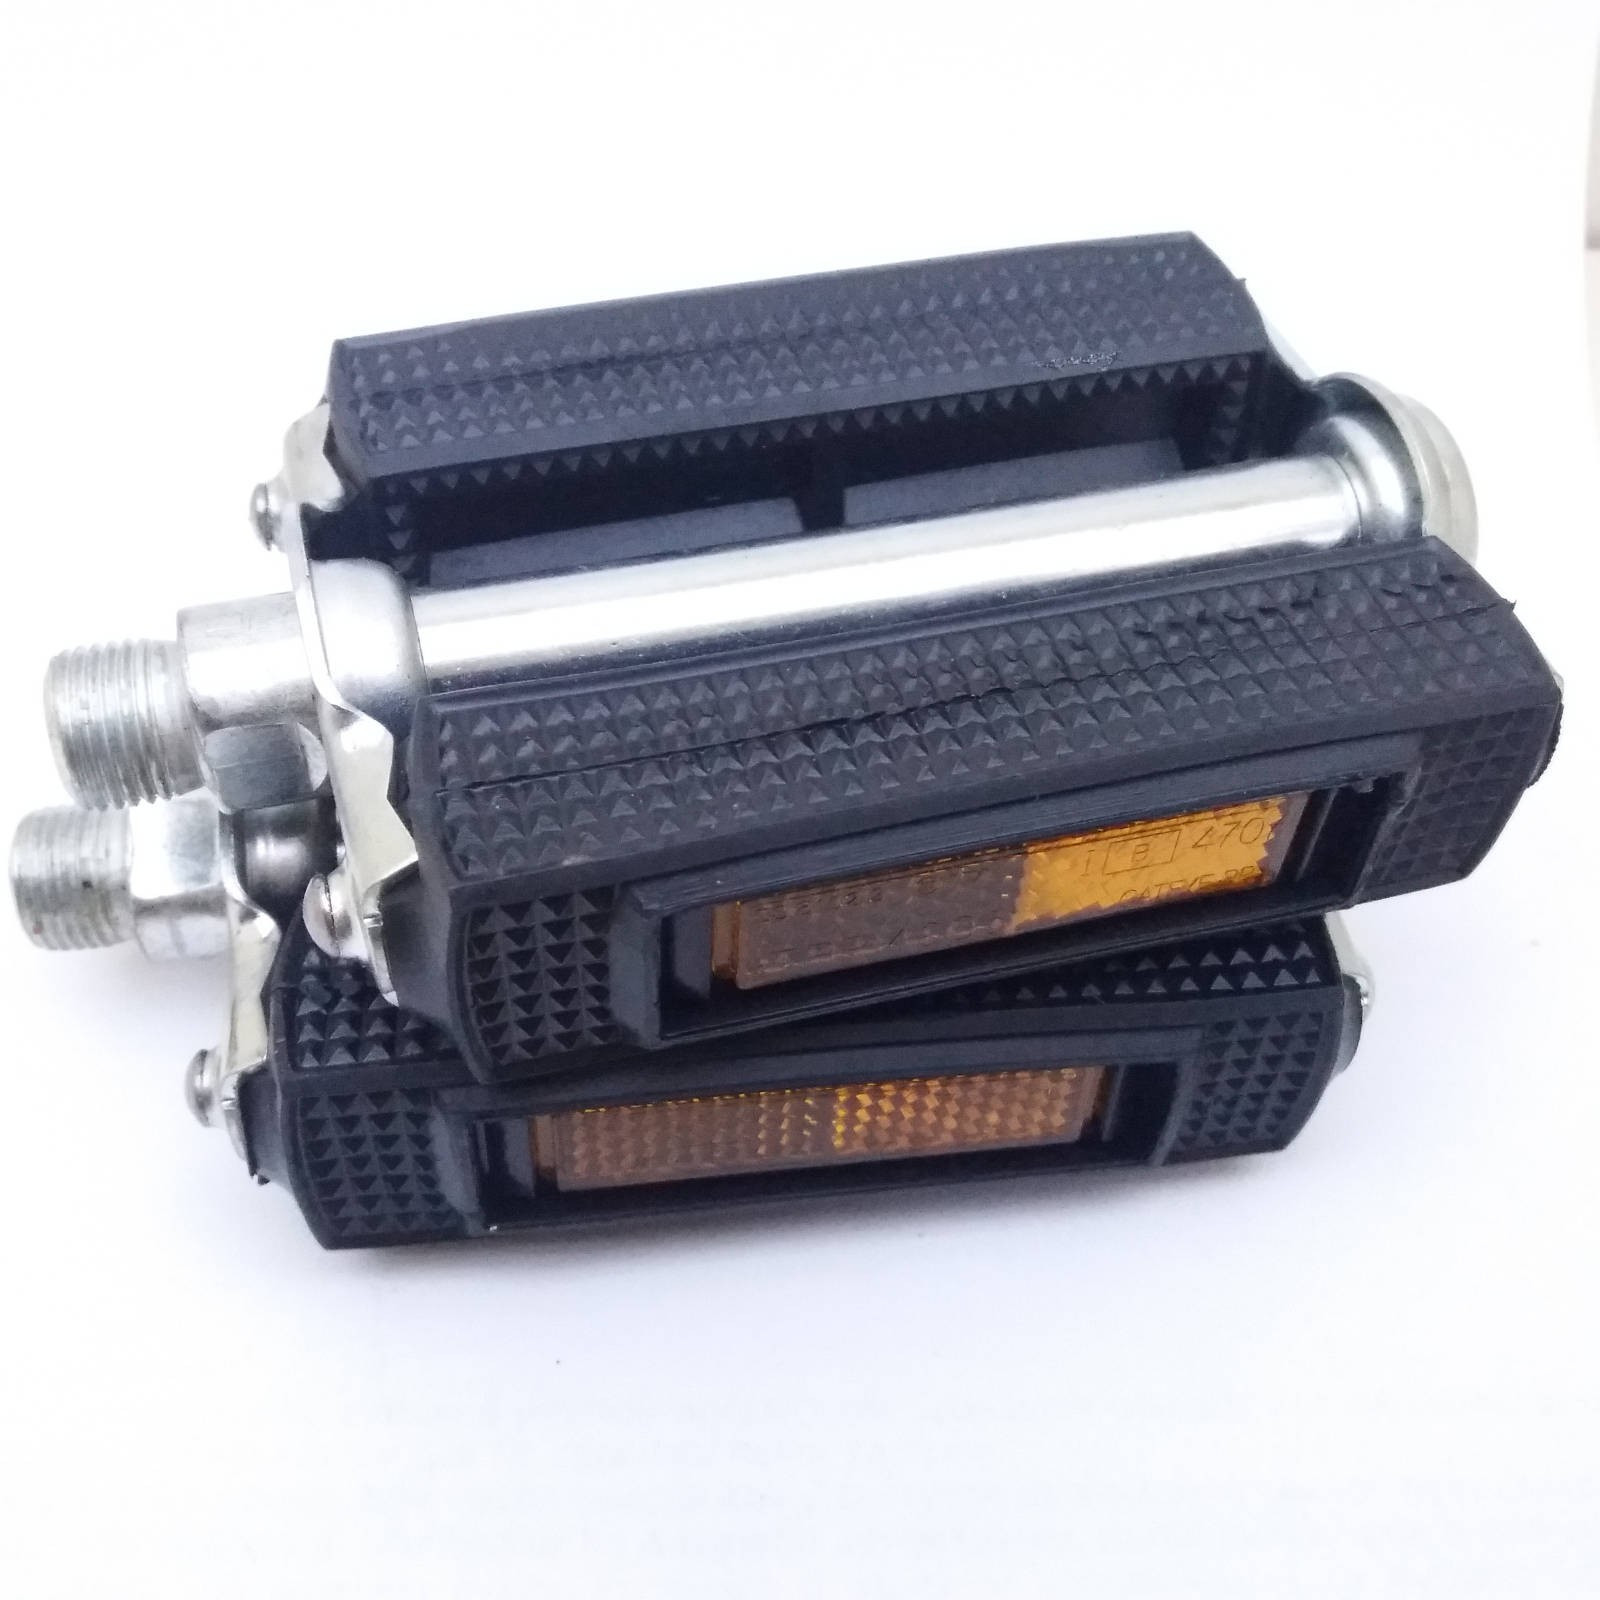 Union R Classic Block Bicycle Pedals with metal housing 9/16 thread